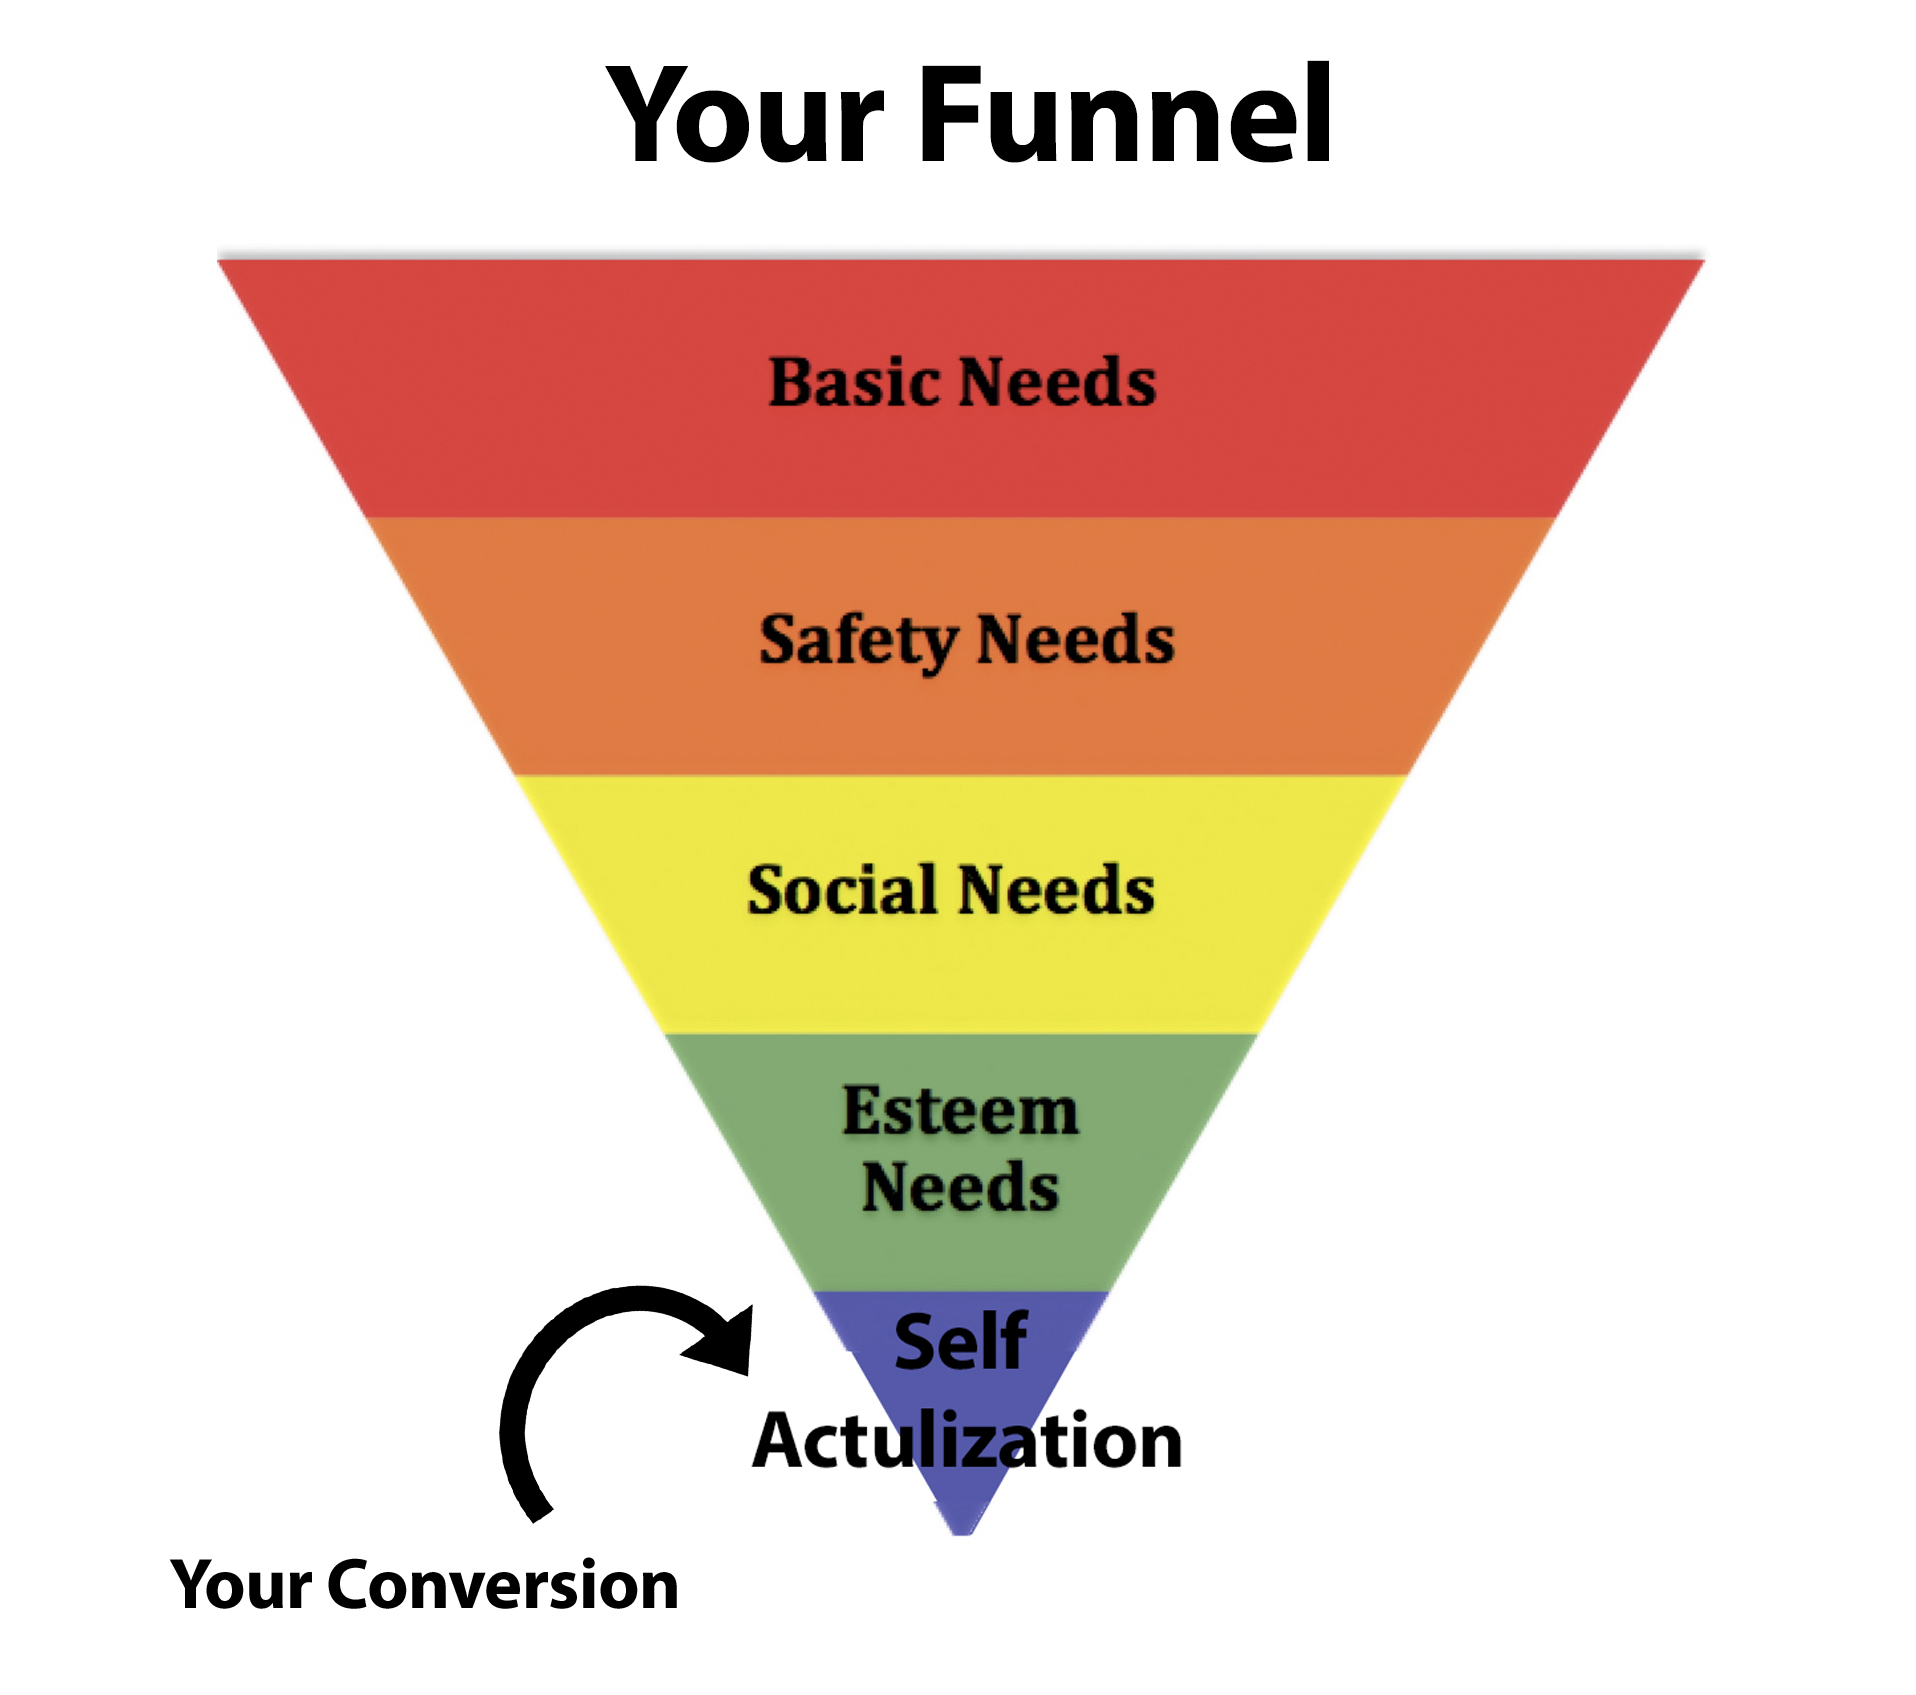 Your Funnel